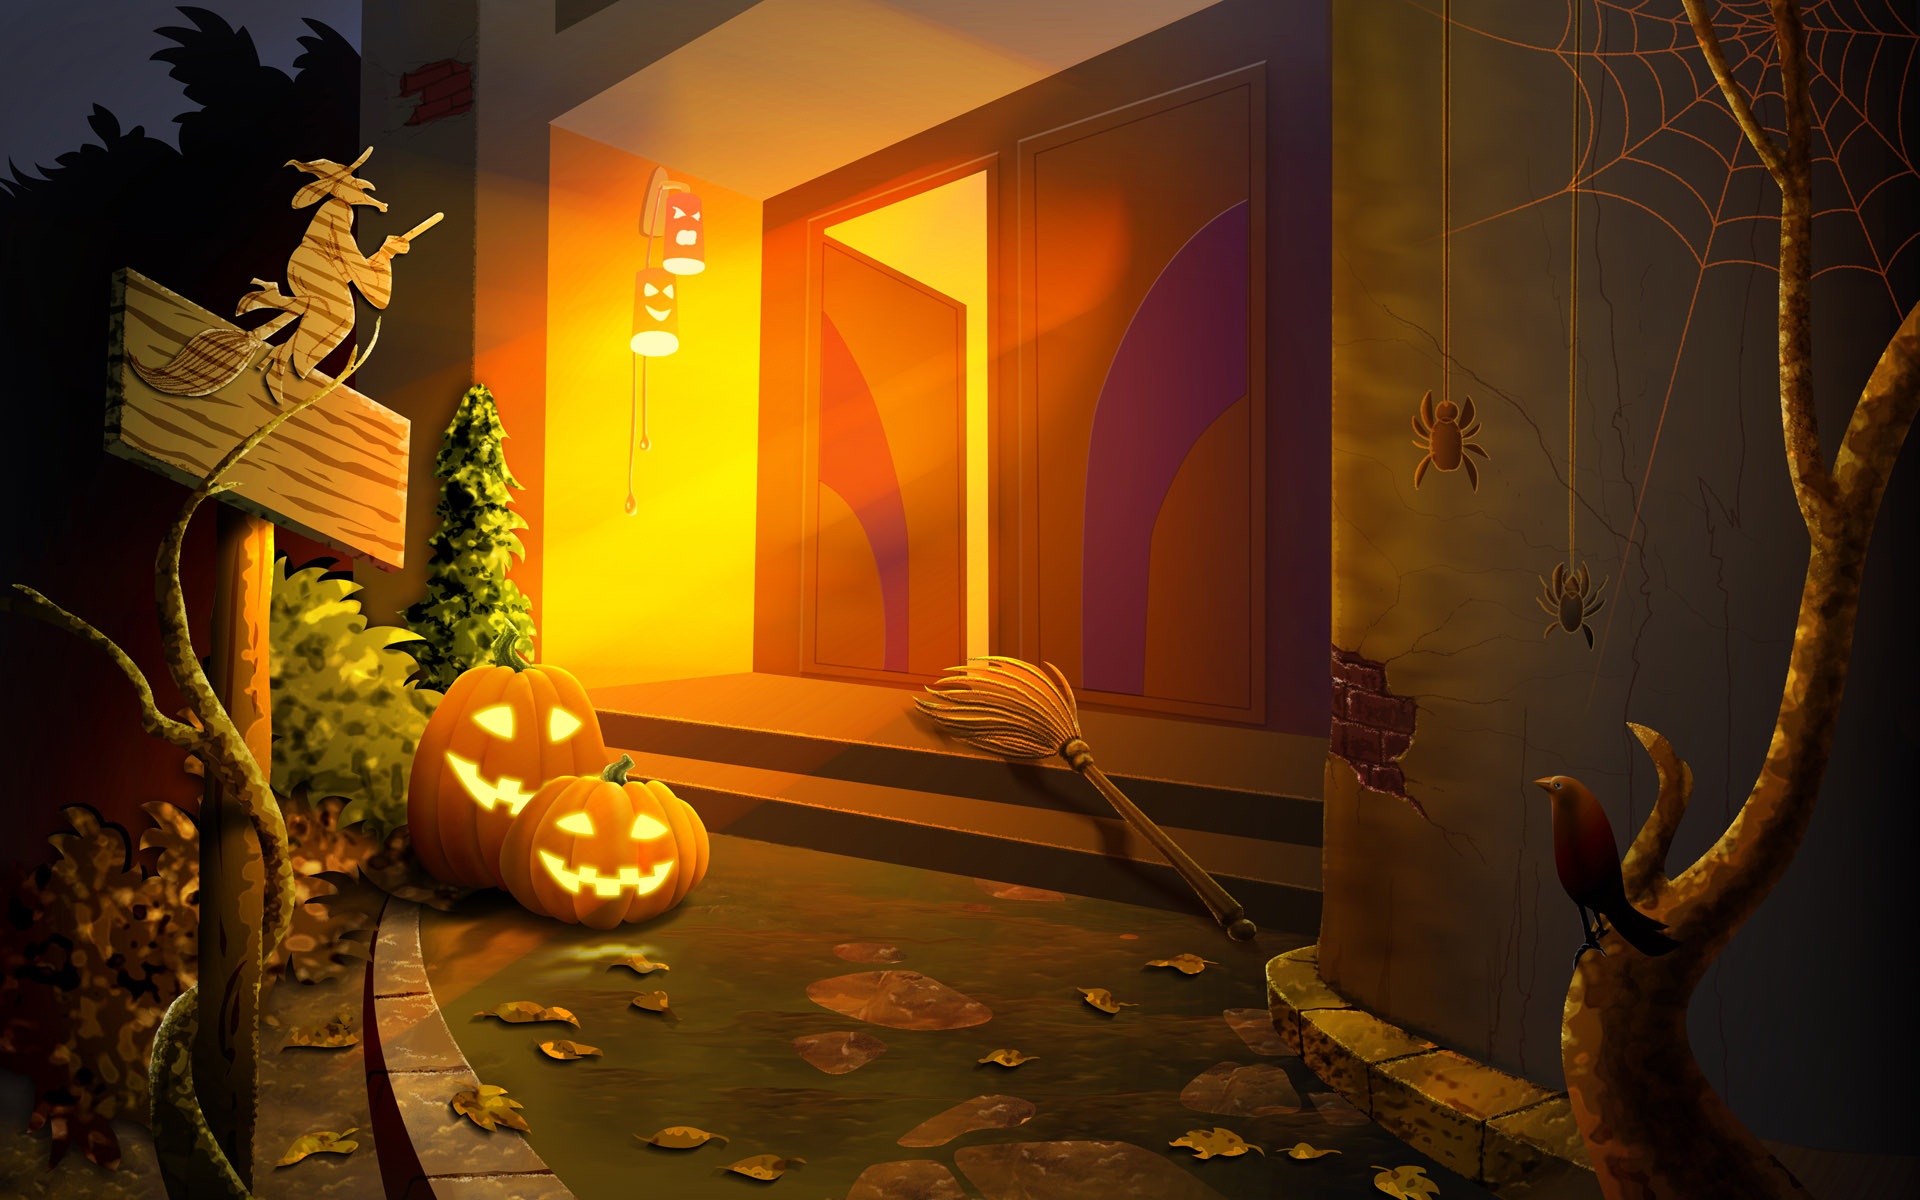 Halloween House witches Desktop wallpapers 1920x1200 1920x1200